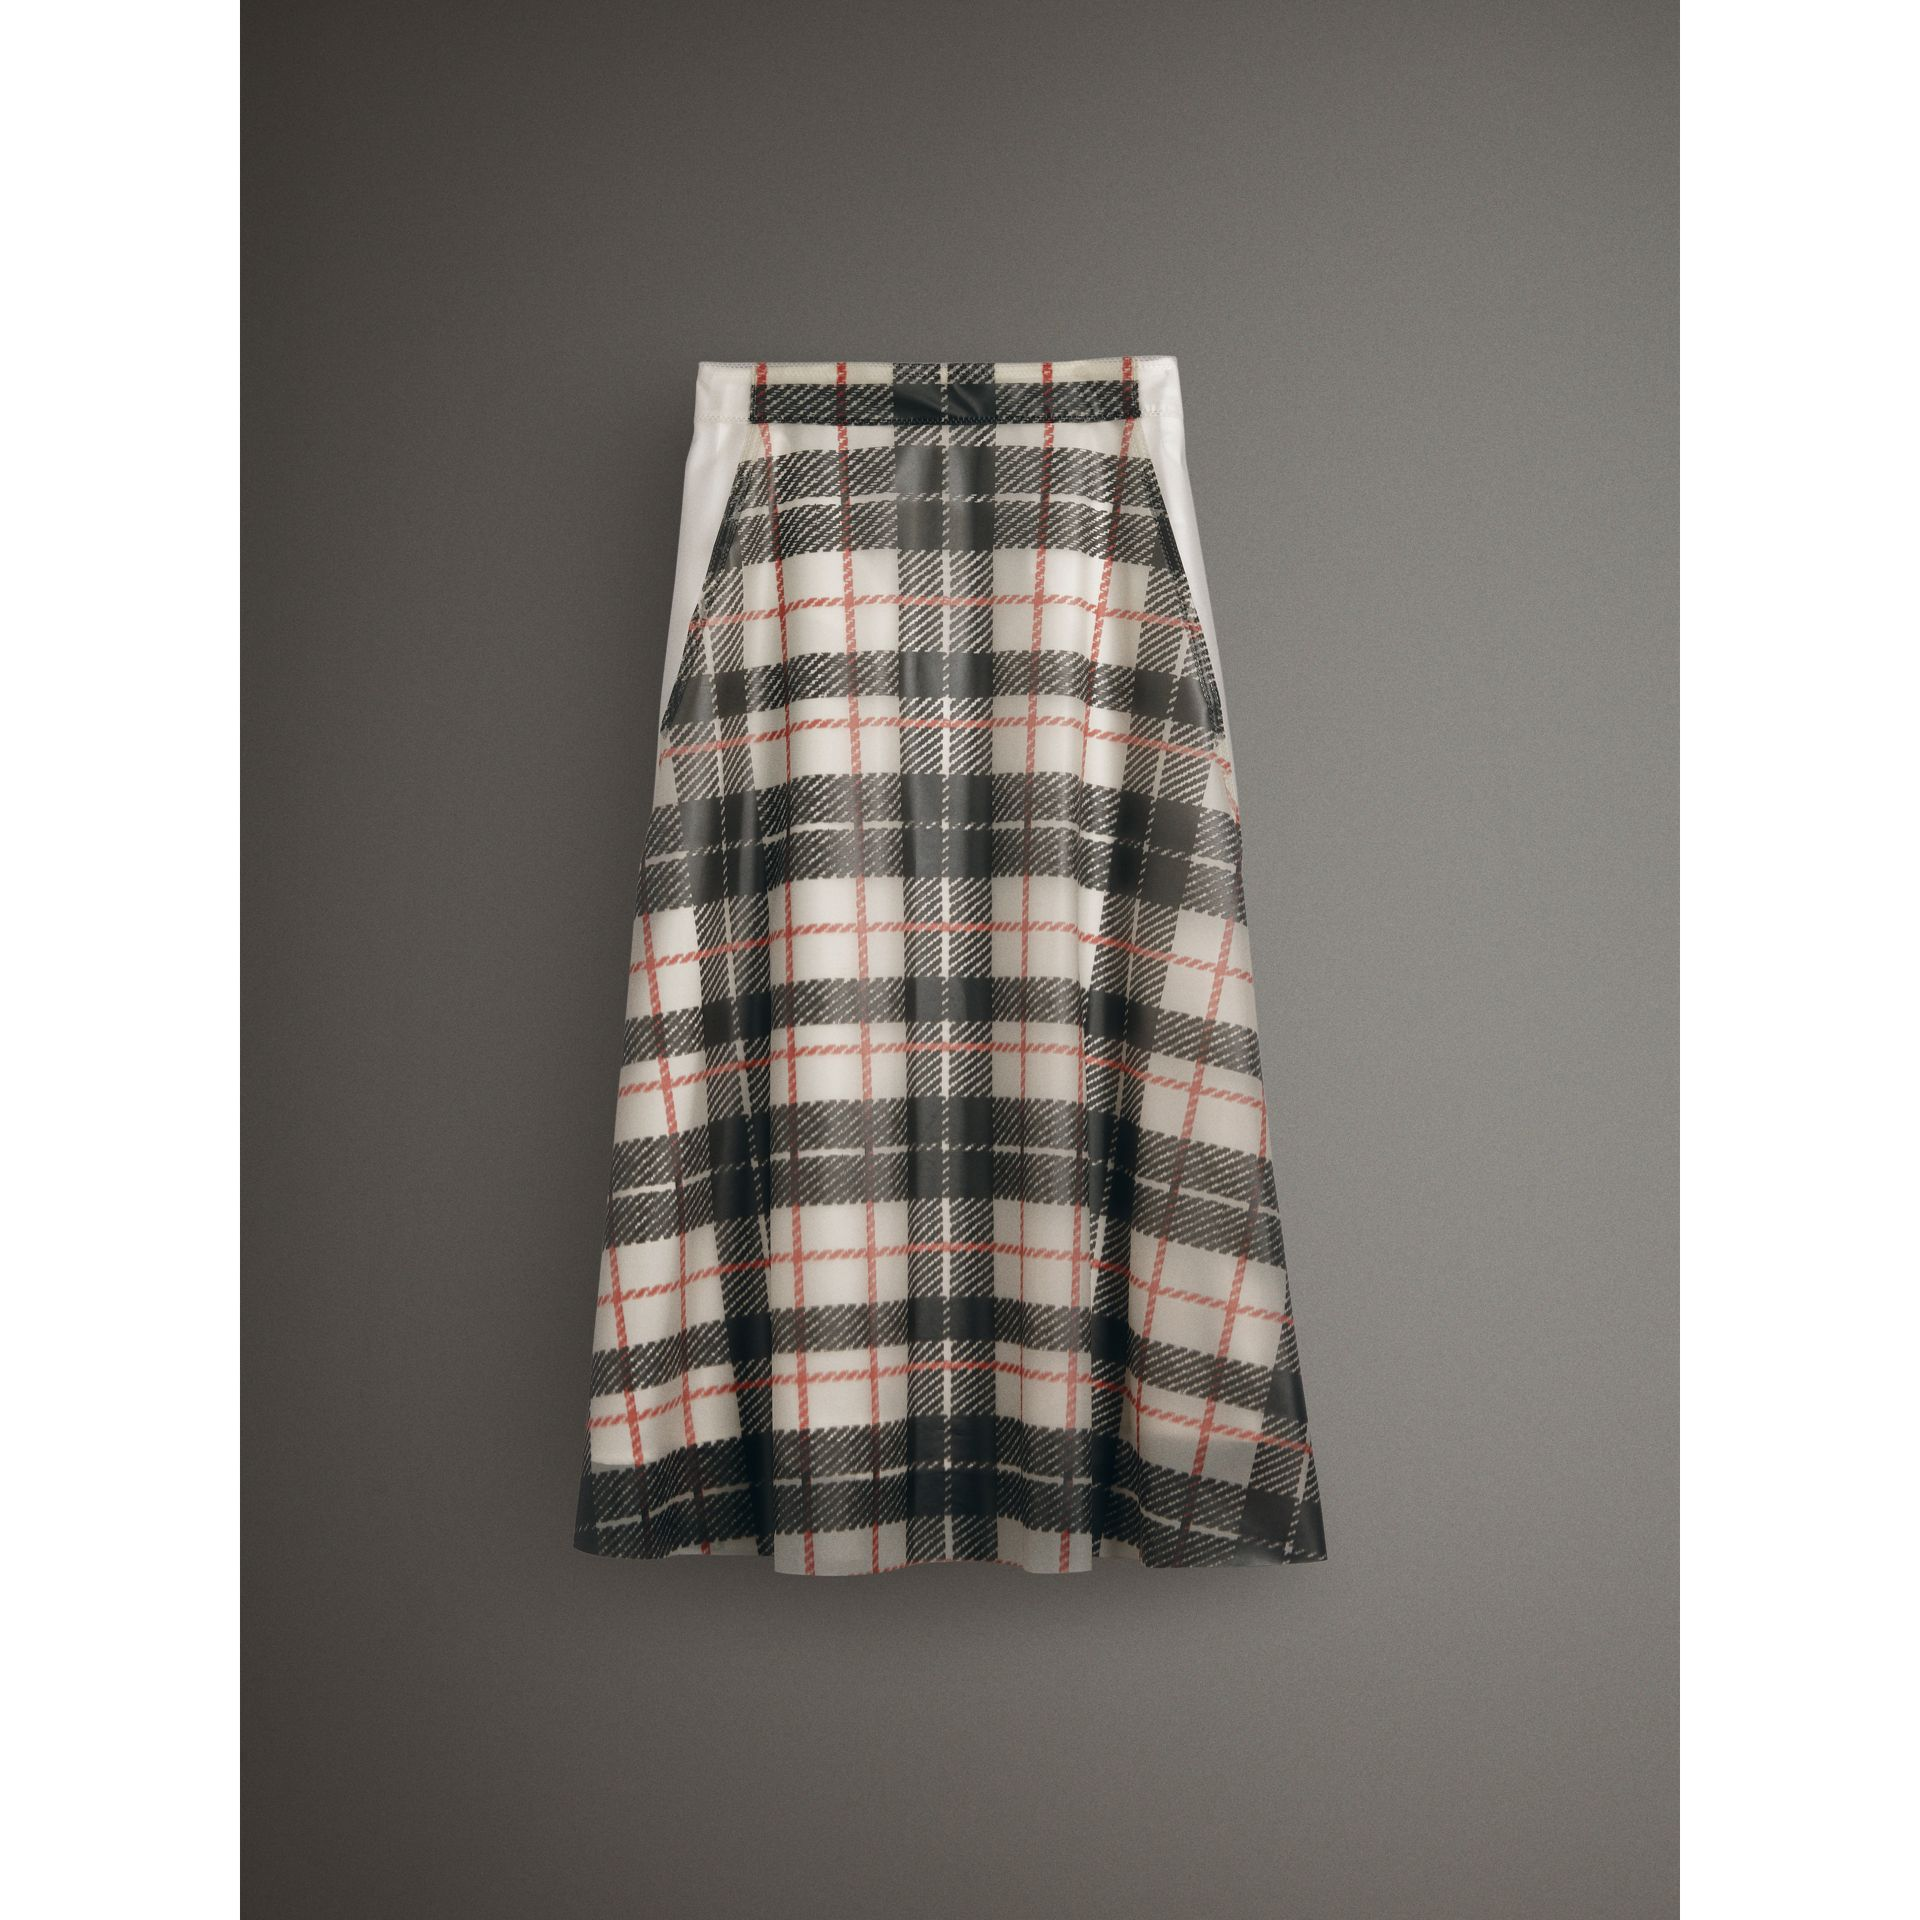 Silk-lined Tartan Plastic A-line Skirt in Black/beige - Women | Burberry - gallery image 3